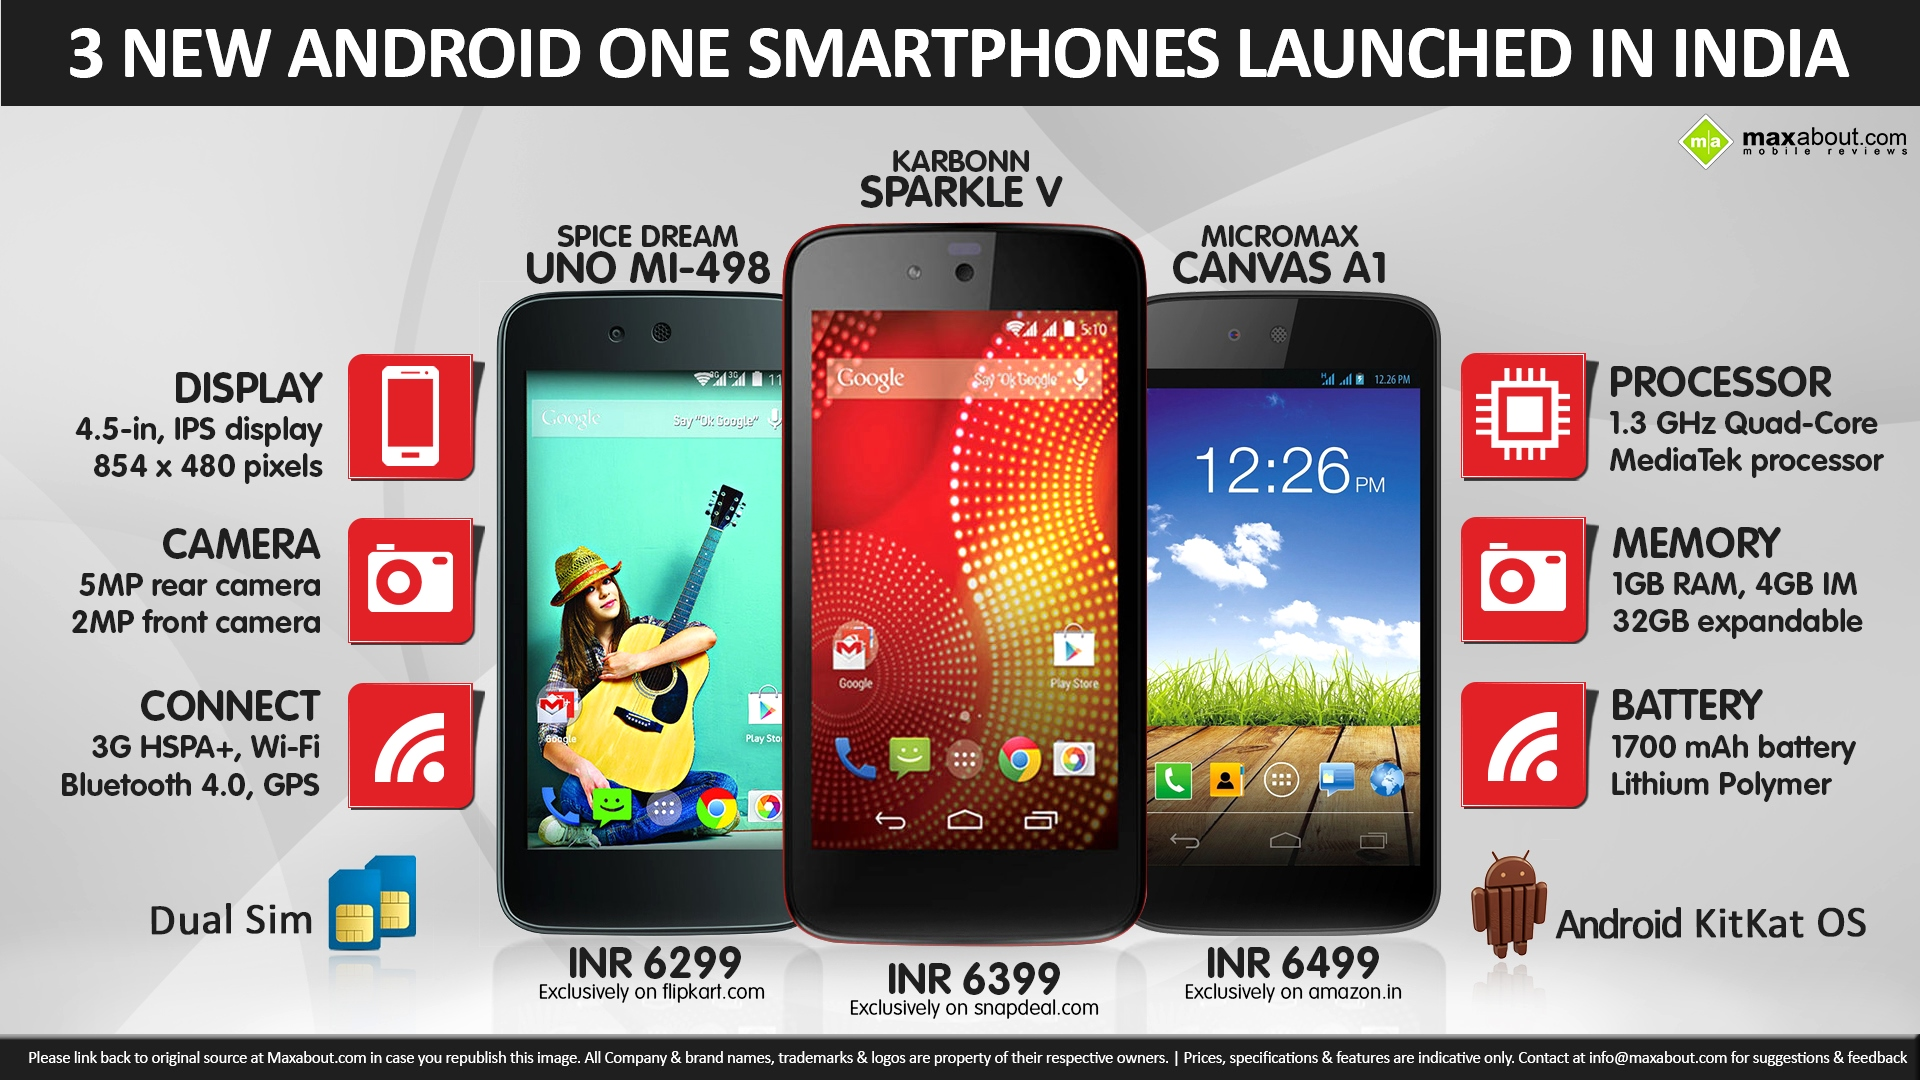 3 new android one smartphones spice dream uno karbonn sparkle v view full size voltagebd Images